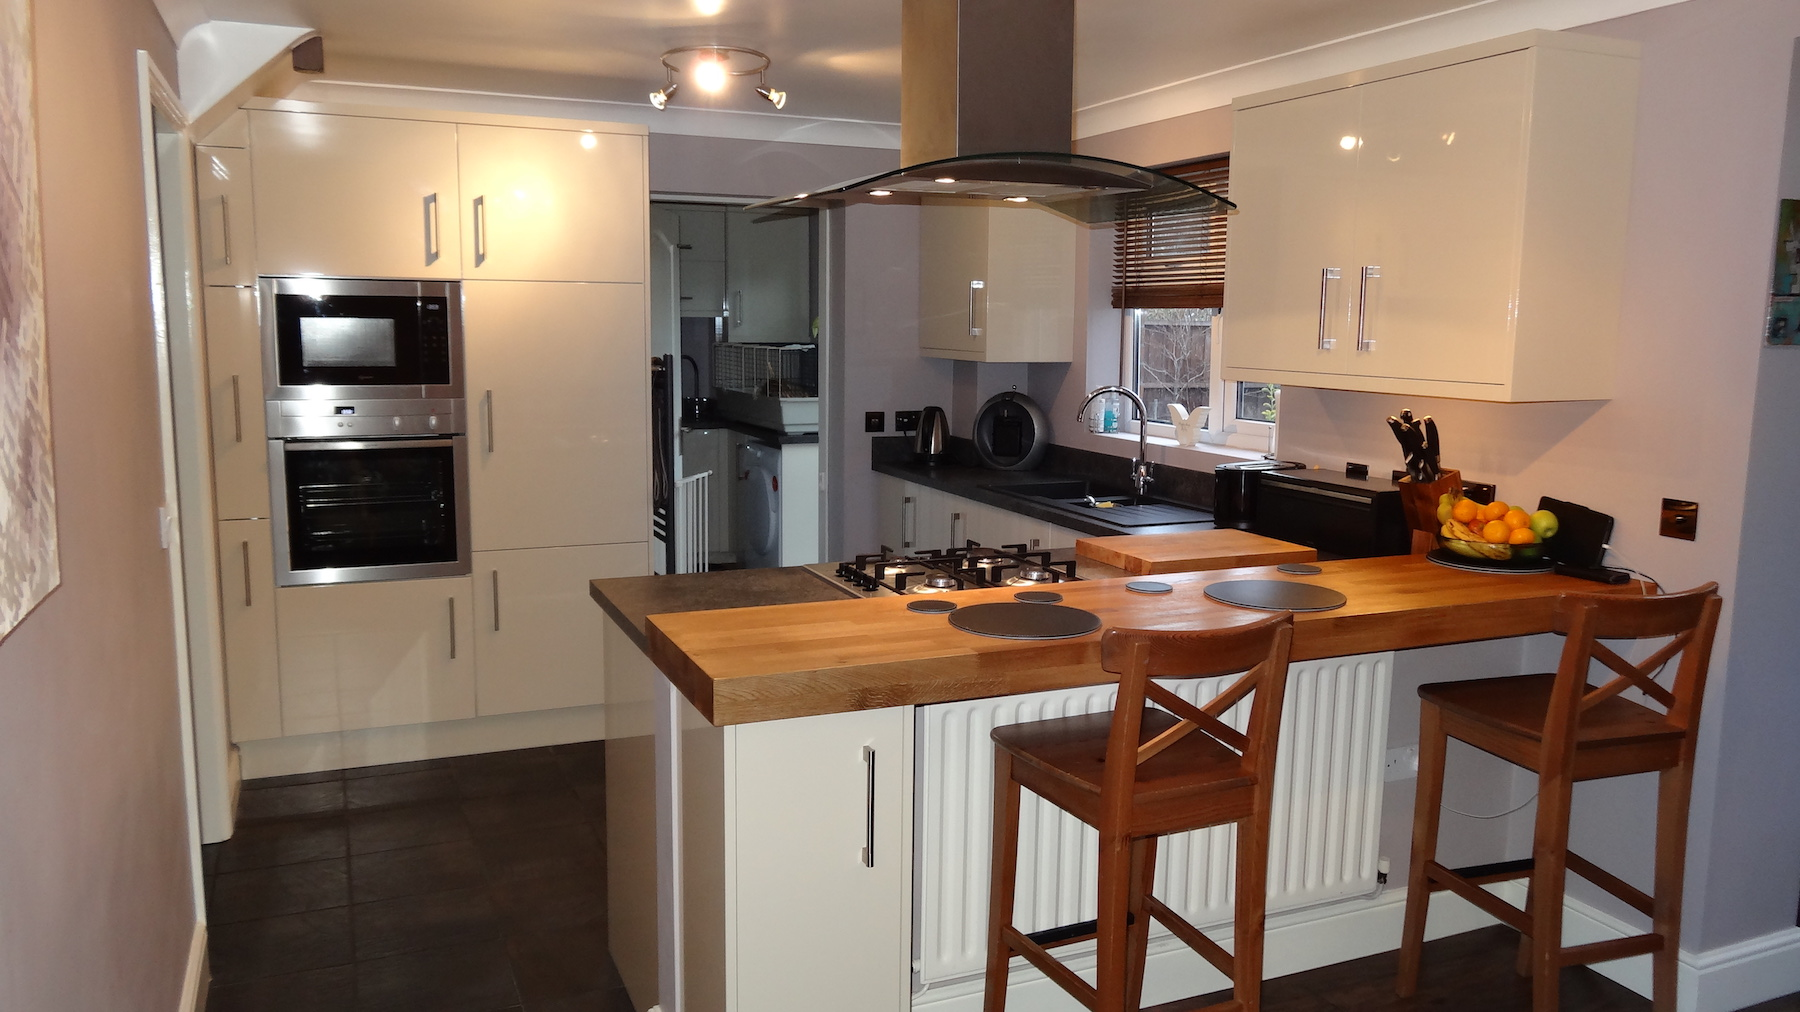 Mr And Mrs Smith Kitchen mr and mrs smith, ratby | kitchen creations leicester